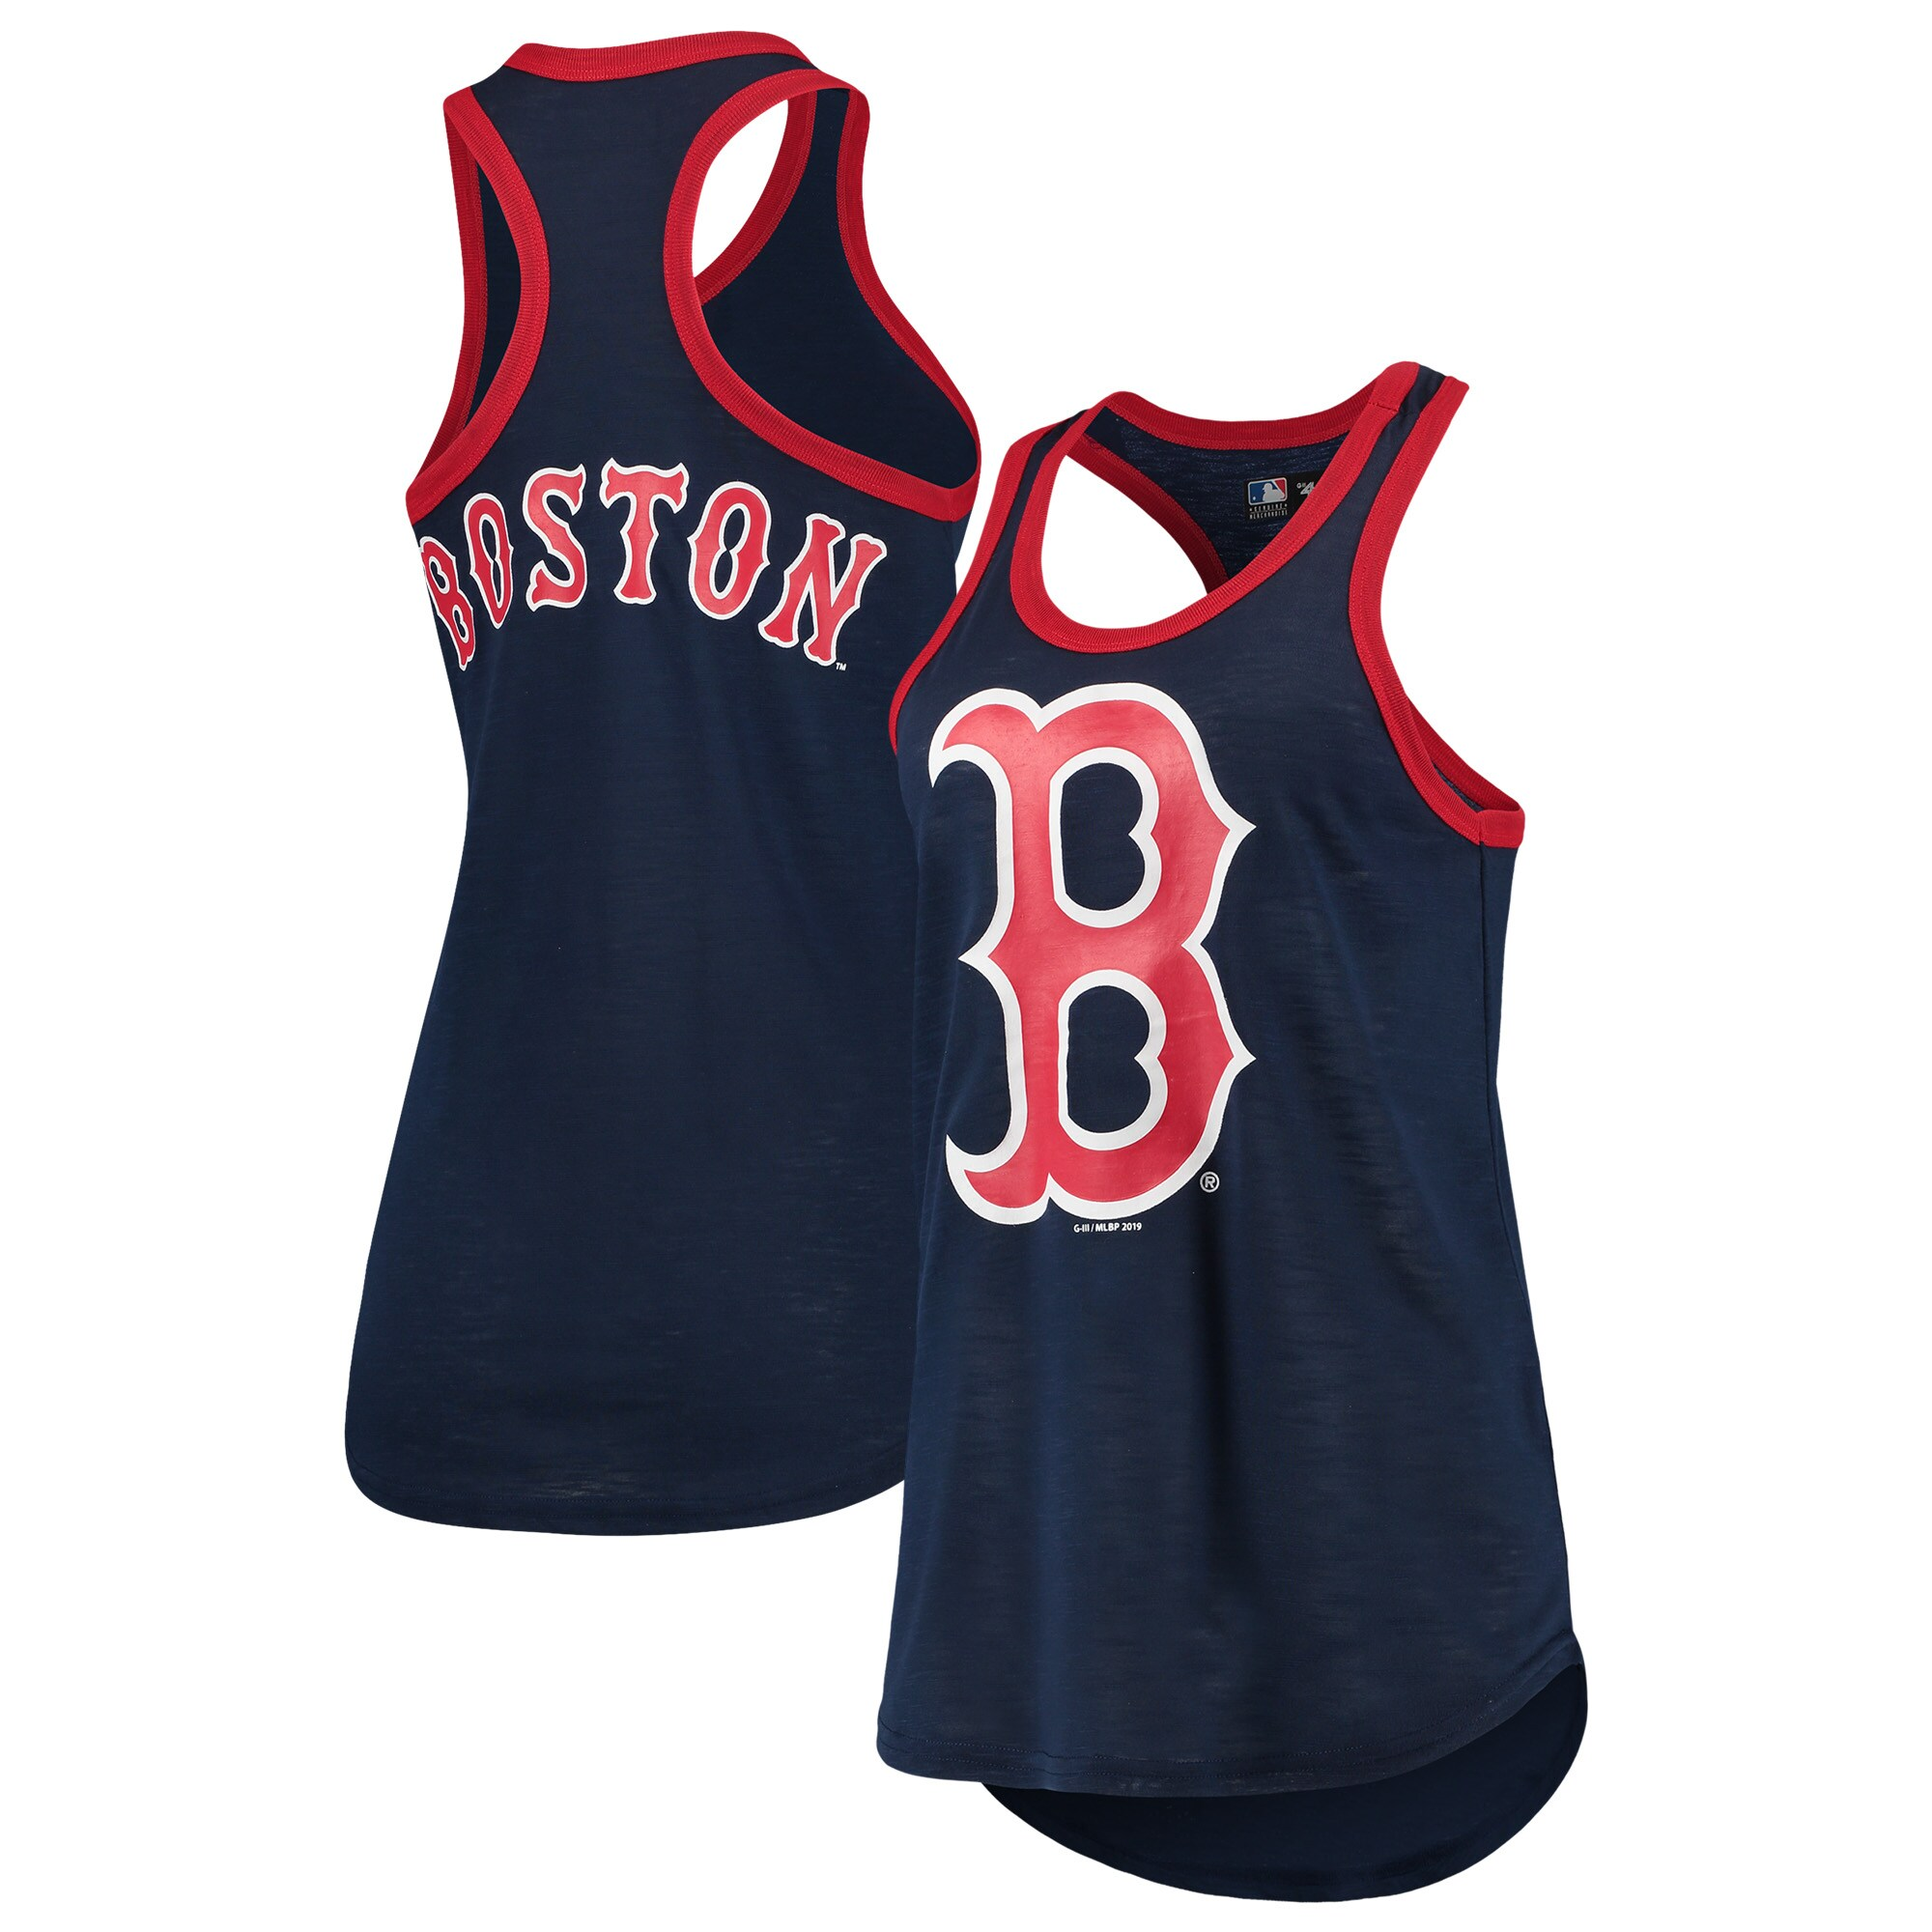 Boston Red Sox G-III 4Her by Carl Banks Women's Team Color Tater Tank Top - Navy